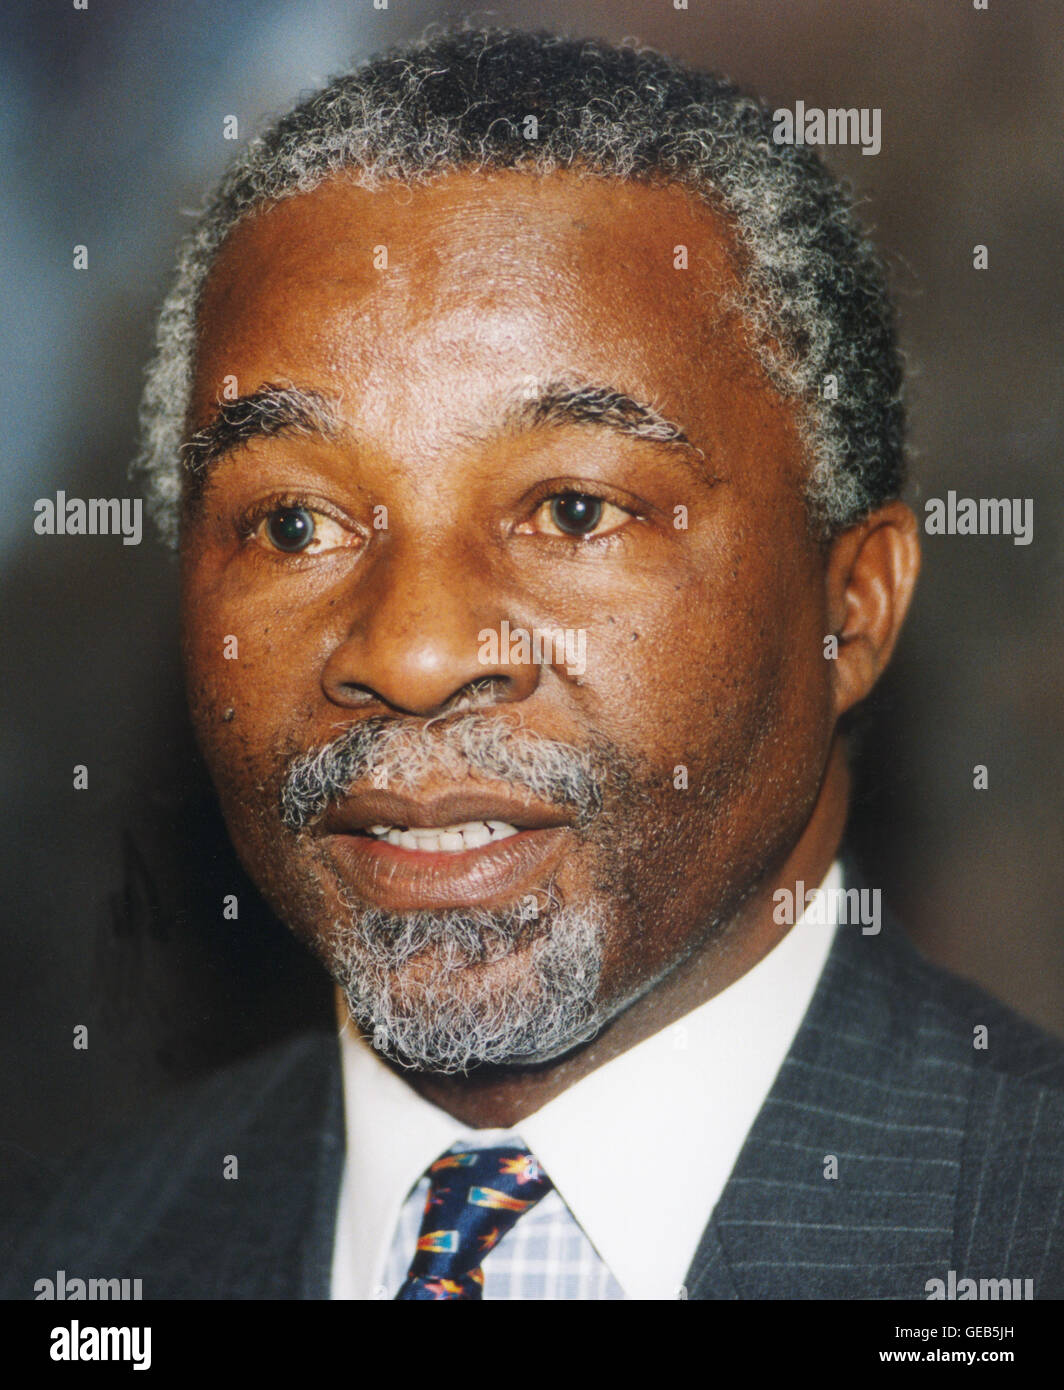 THABO MBEKI President of South Africa - Stock Image